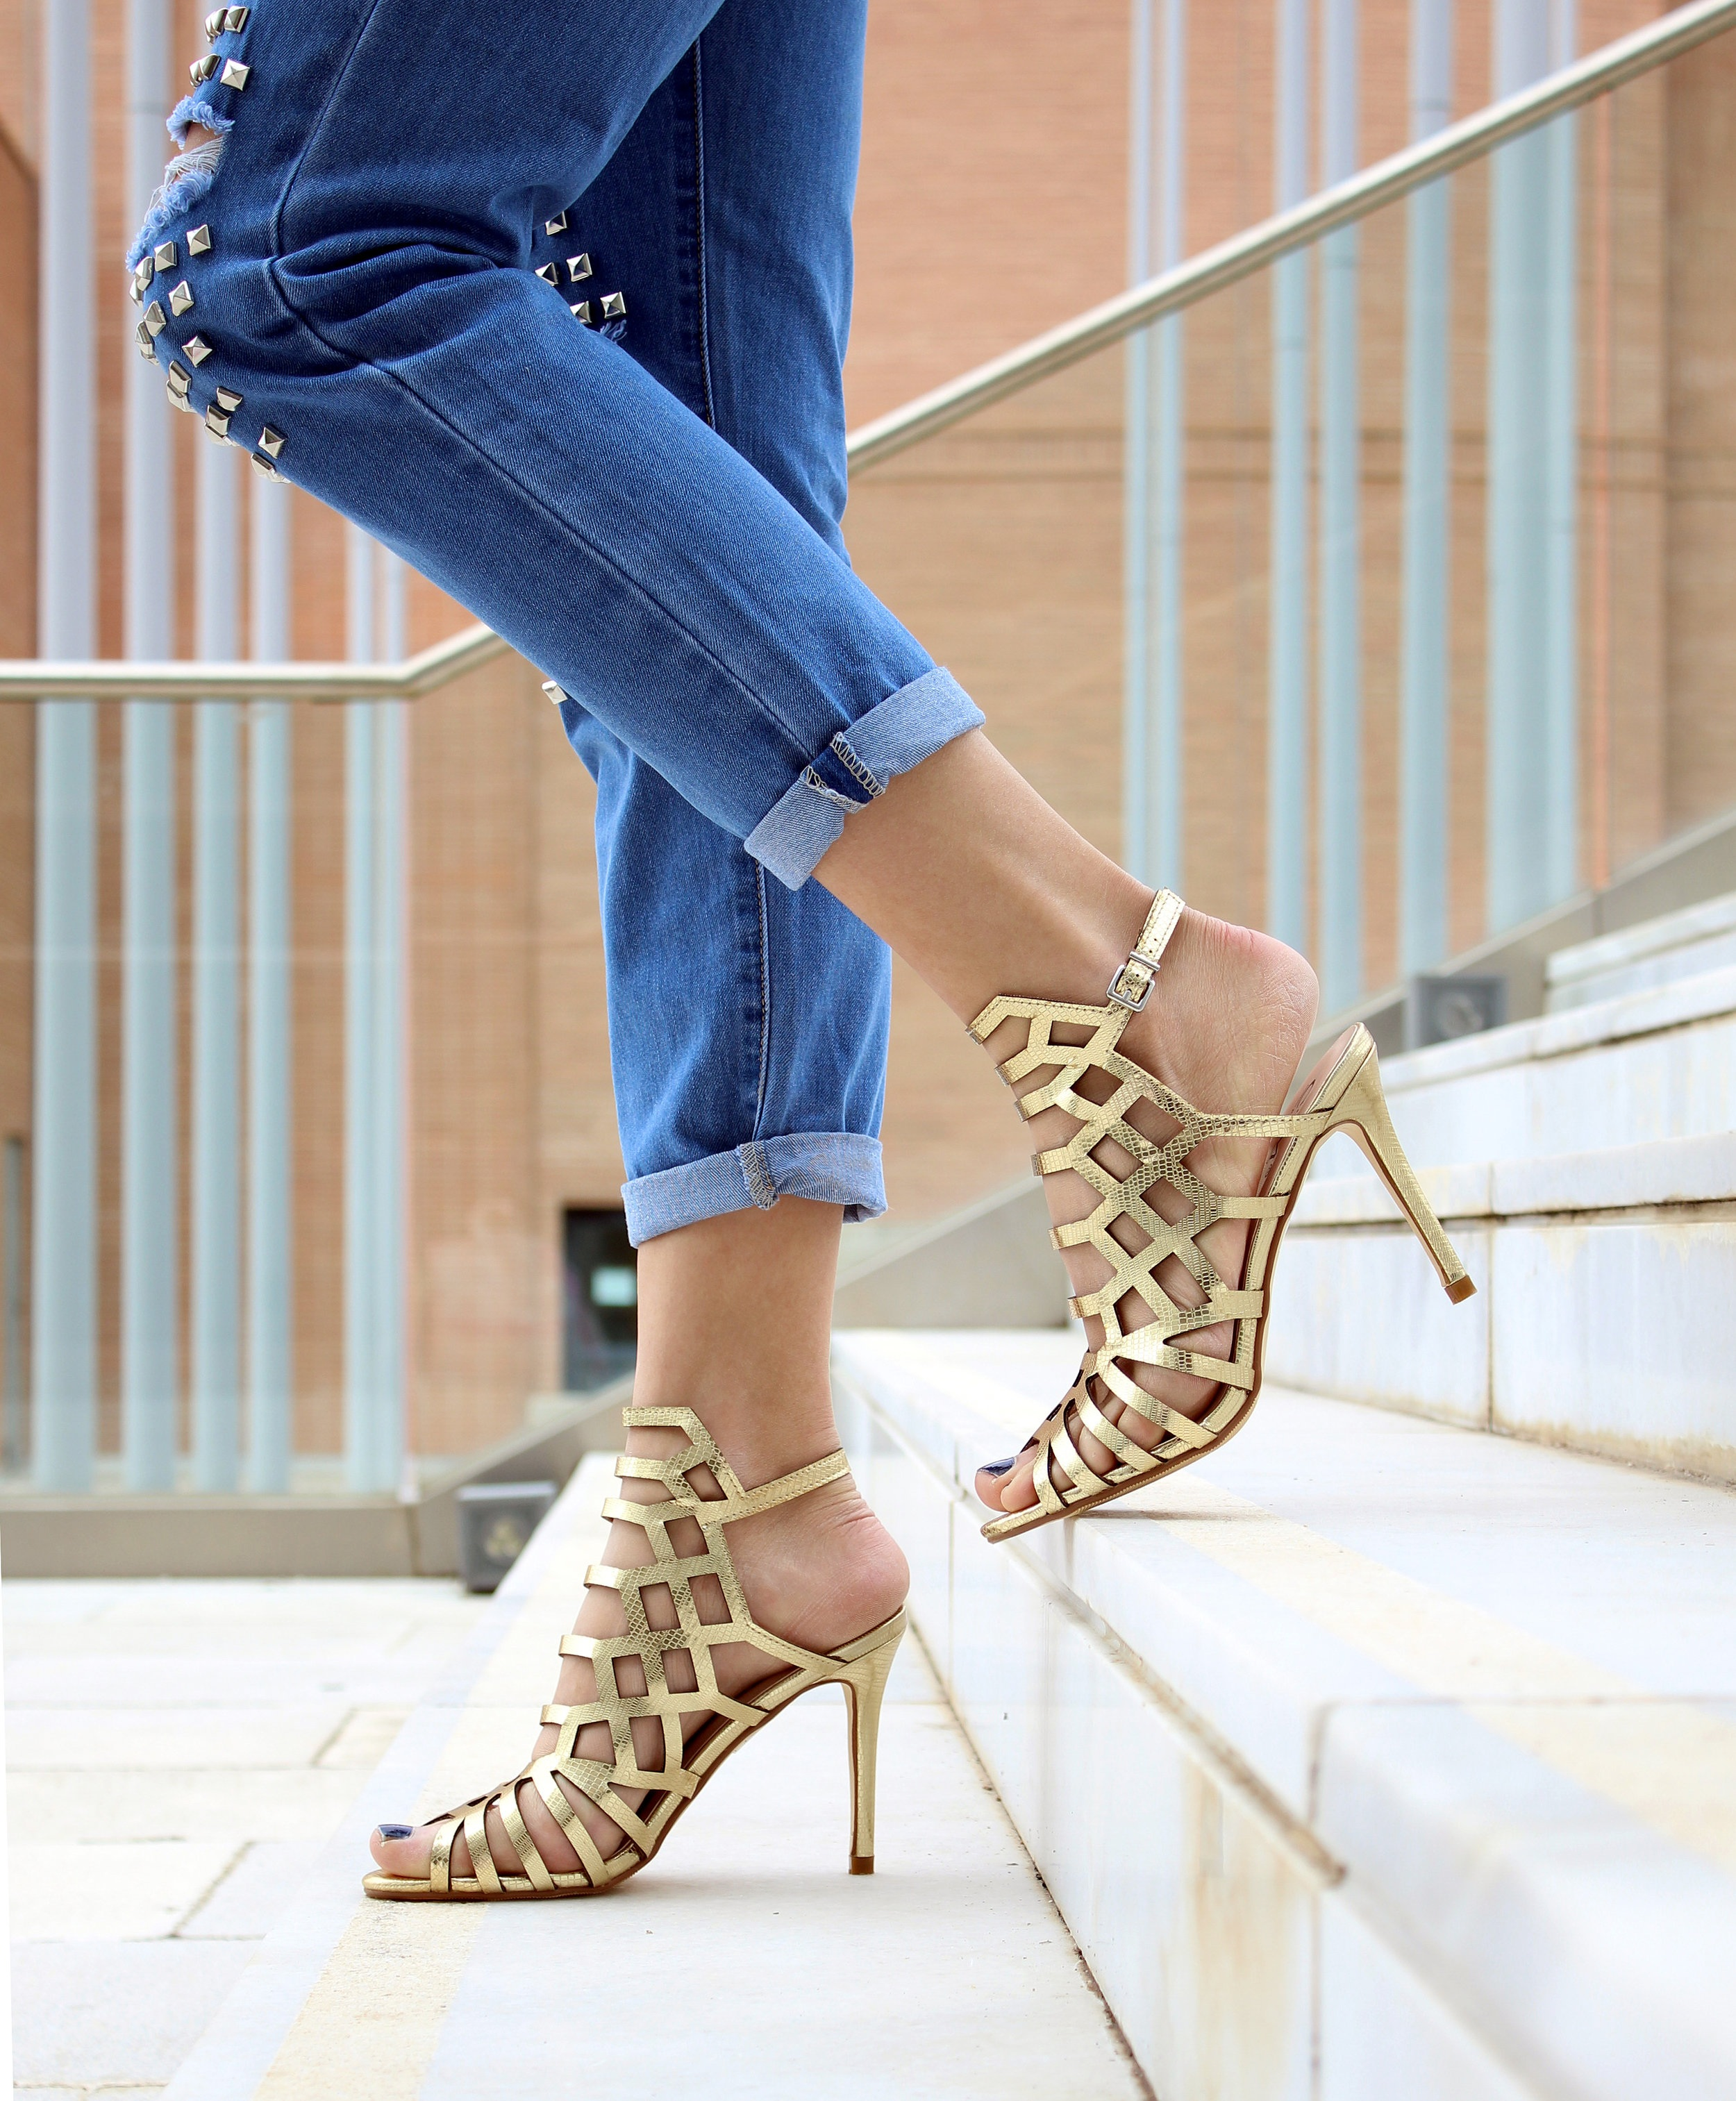 Yes, they look fabulous, but your feet won't forgive you afterwards. Unless, of course you are flying on your private jet and don't have to walk any distance.